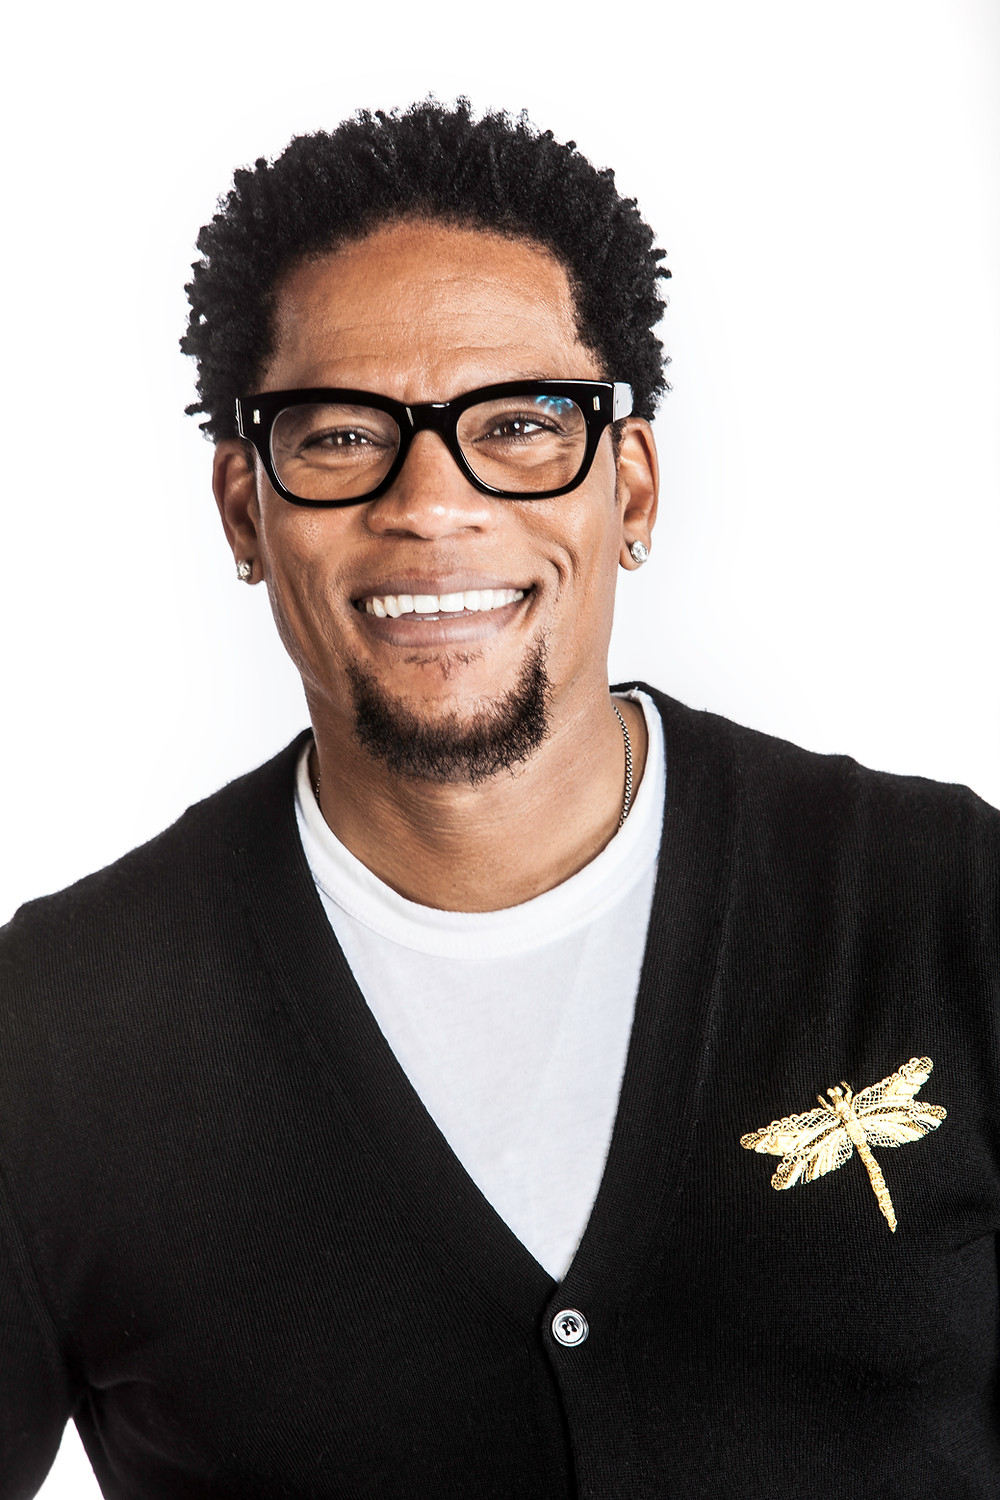 D.L. Hughley Shoots Straight on Police, Mark Fuhrman and Racial Profiling